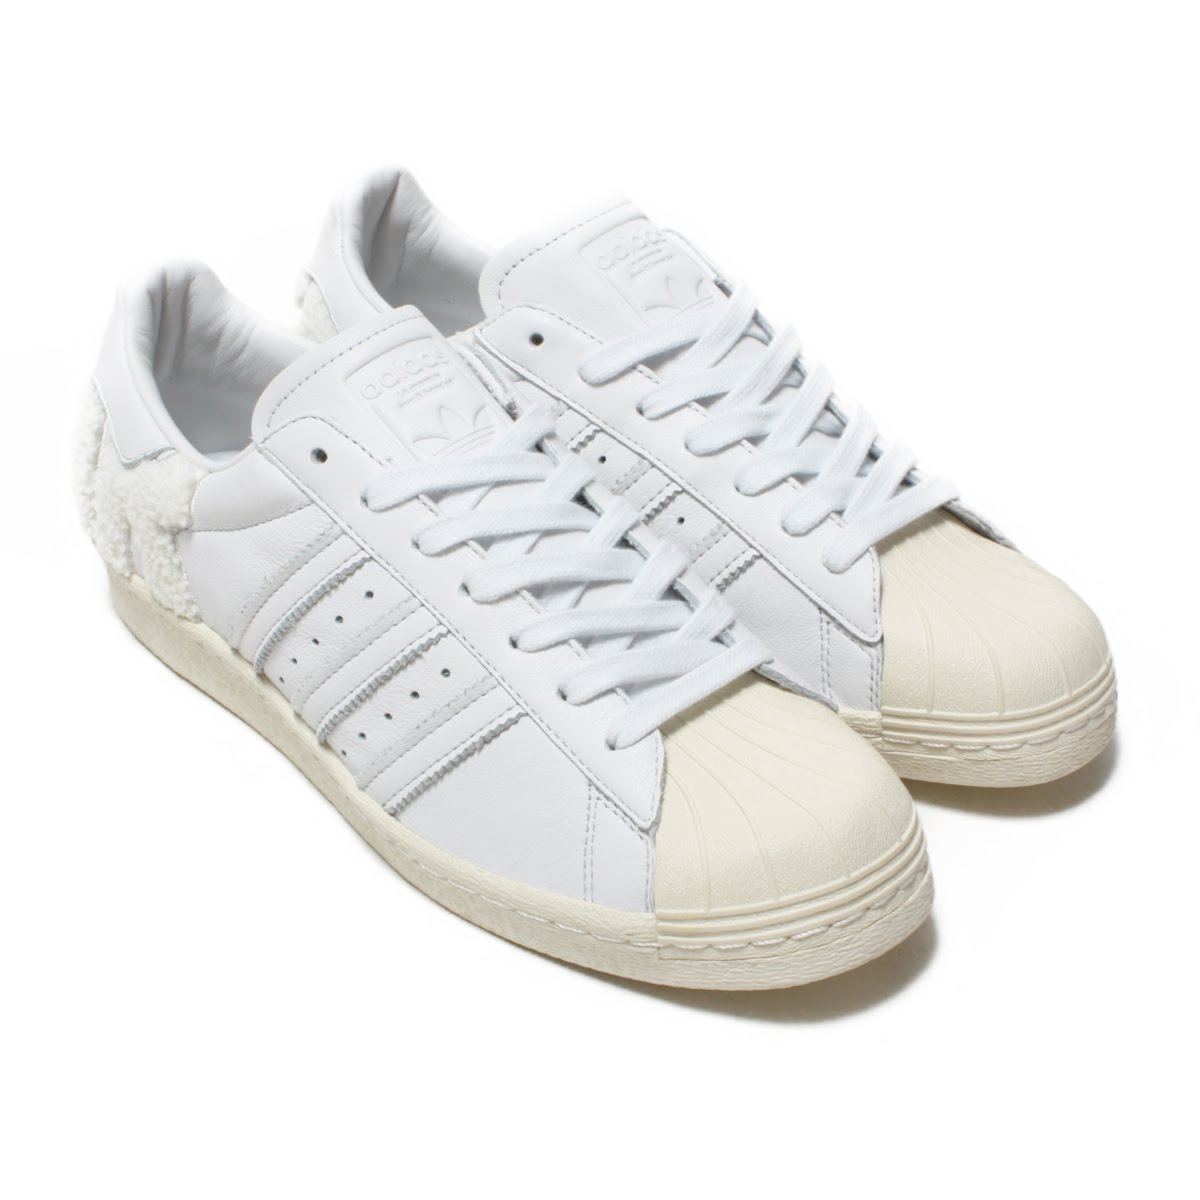 1d75be69527 adidas Originals SUPERSTAR 80s (Adidas originals superstar 80s) Crystal  White Crystal White Off White 18FW-I